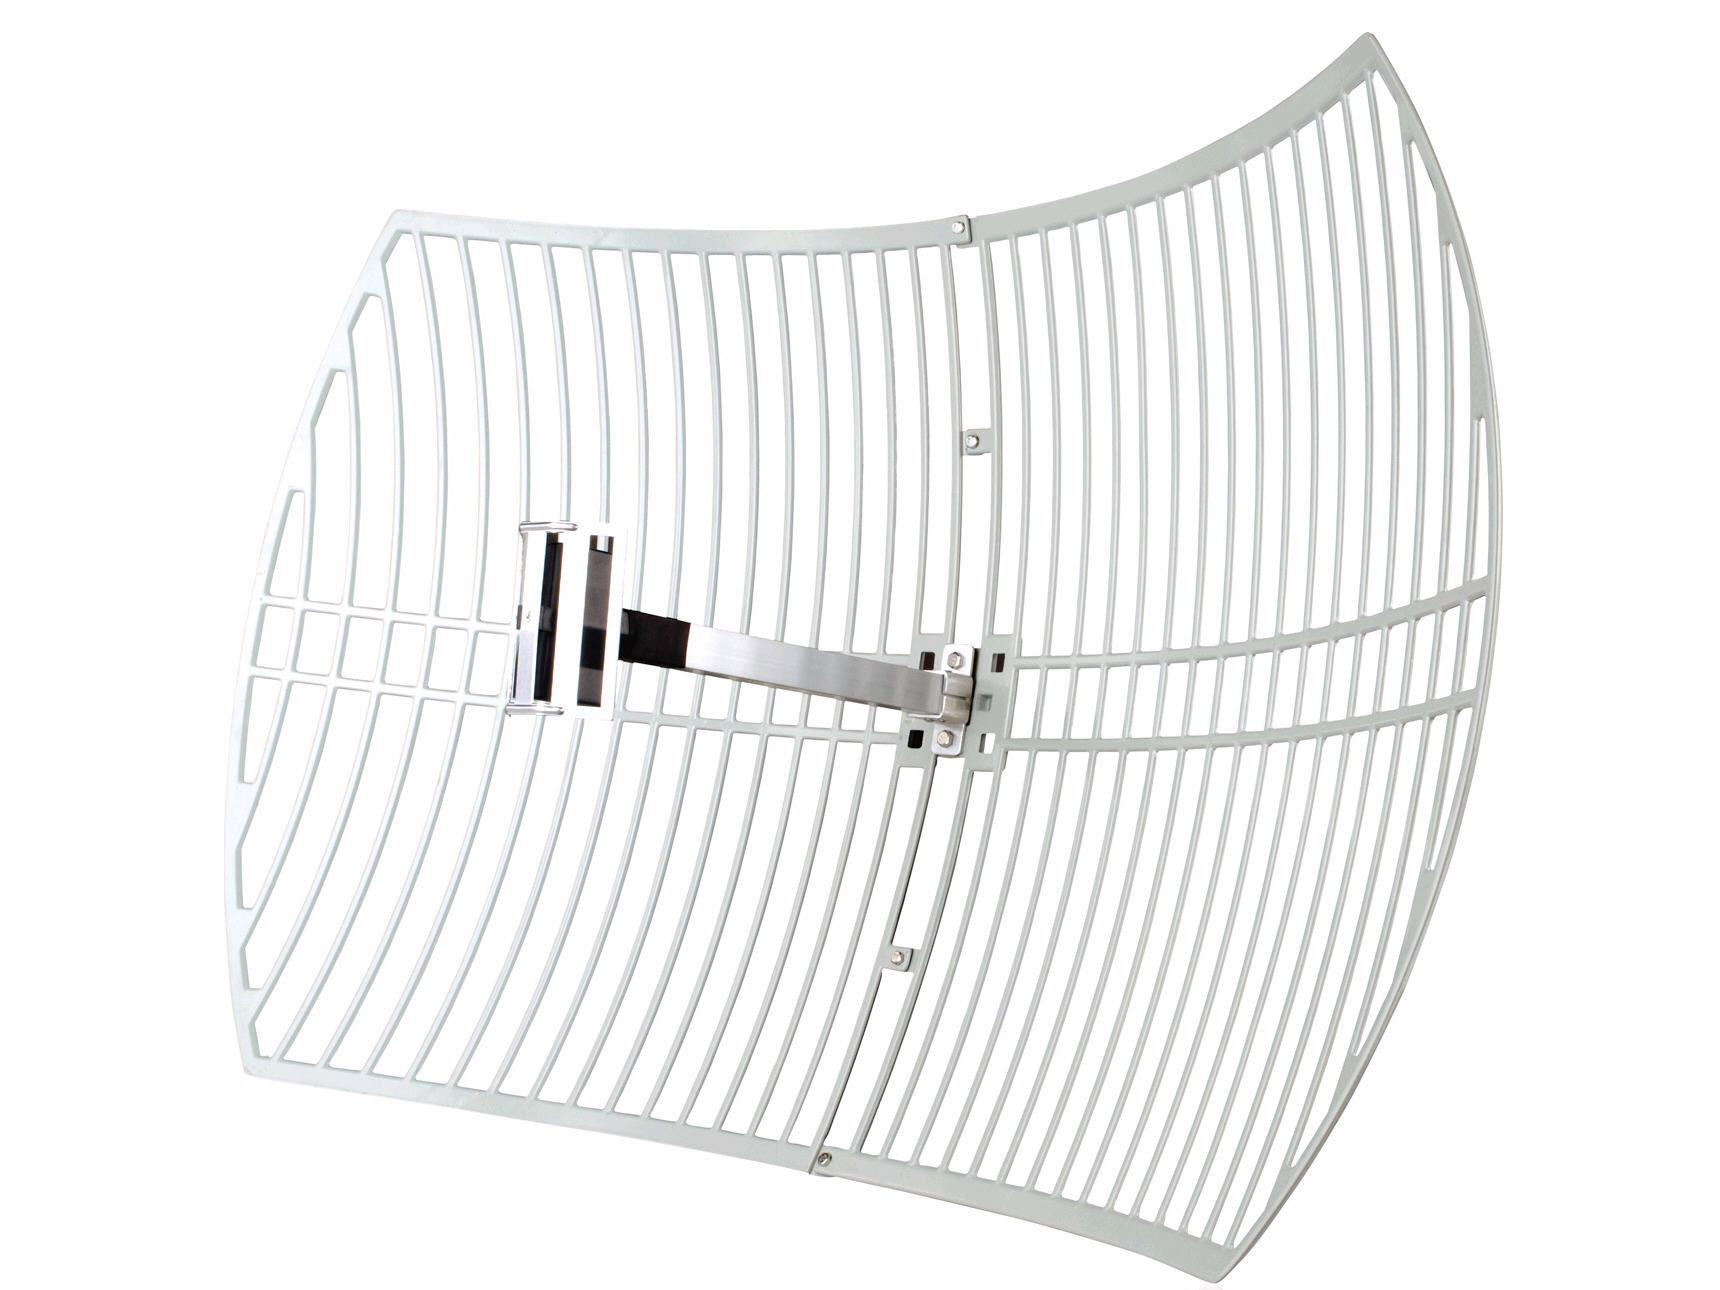 TP-Link 2.4Ghz 24Dbi Outdoor Grid Antenna, N-Typ